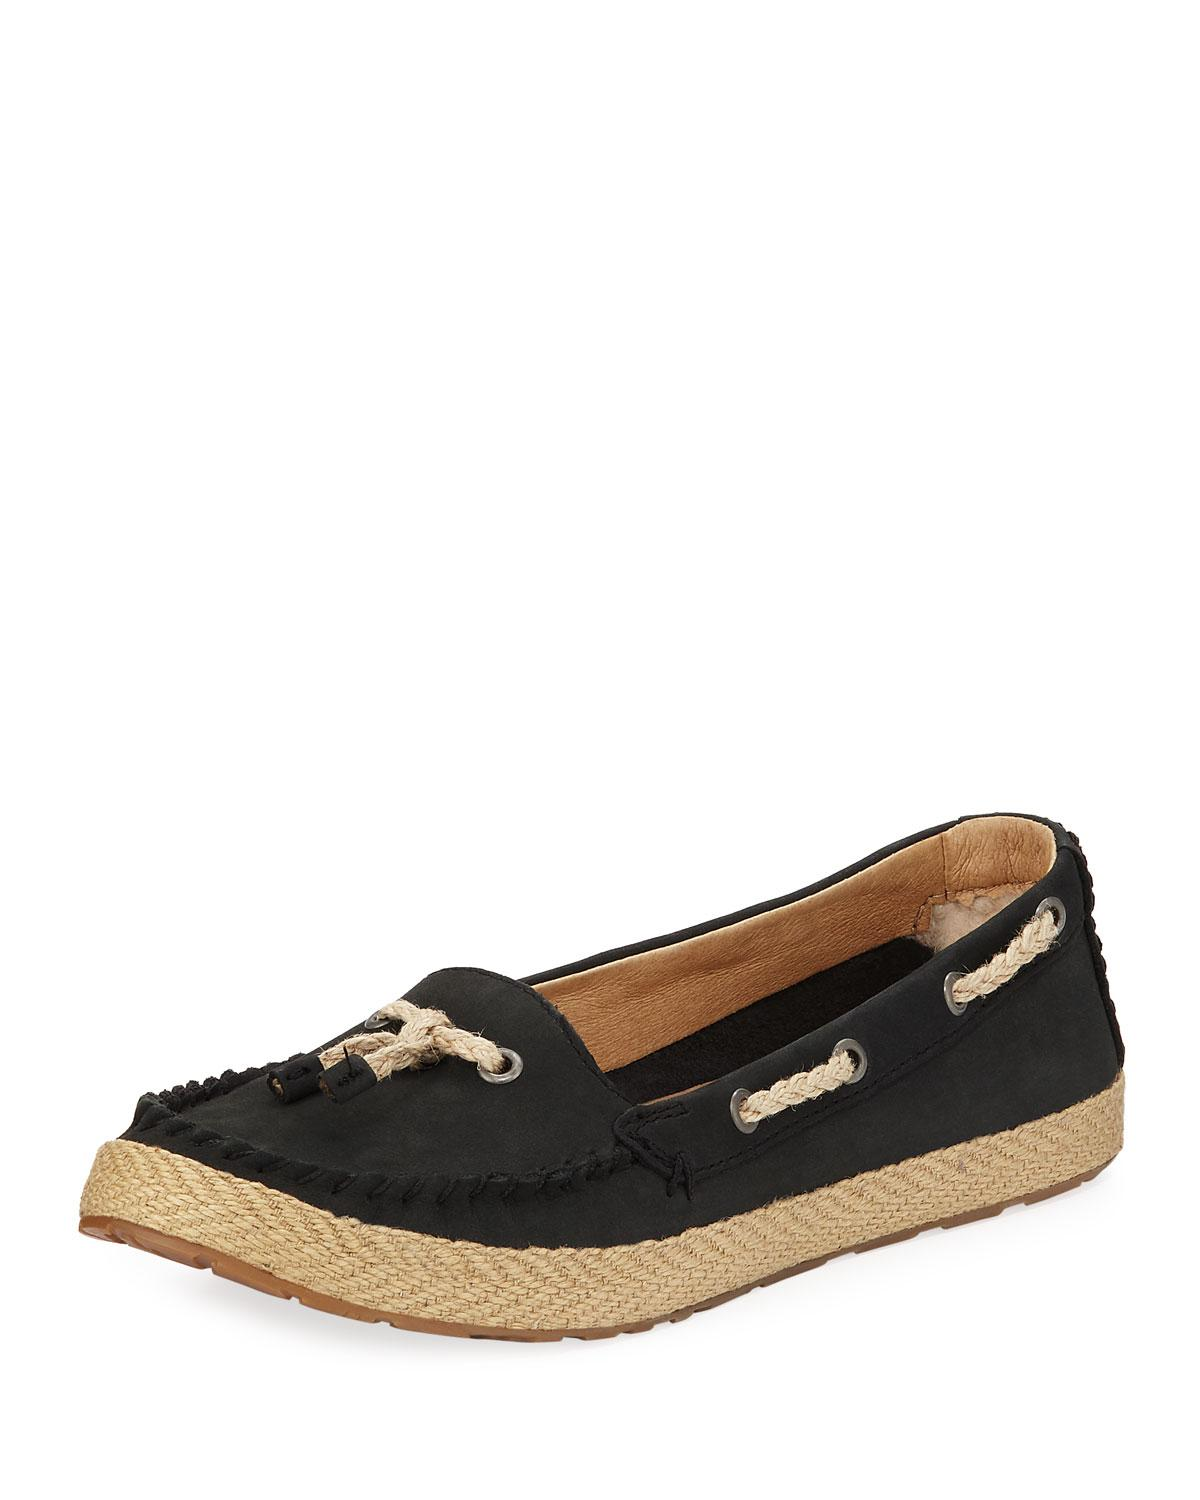 dbe3904e760 Lyst - UGG Chivon Leather Flat Loafers Black in Black